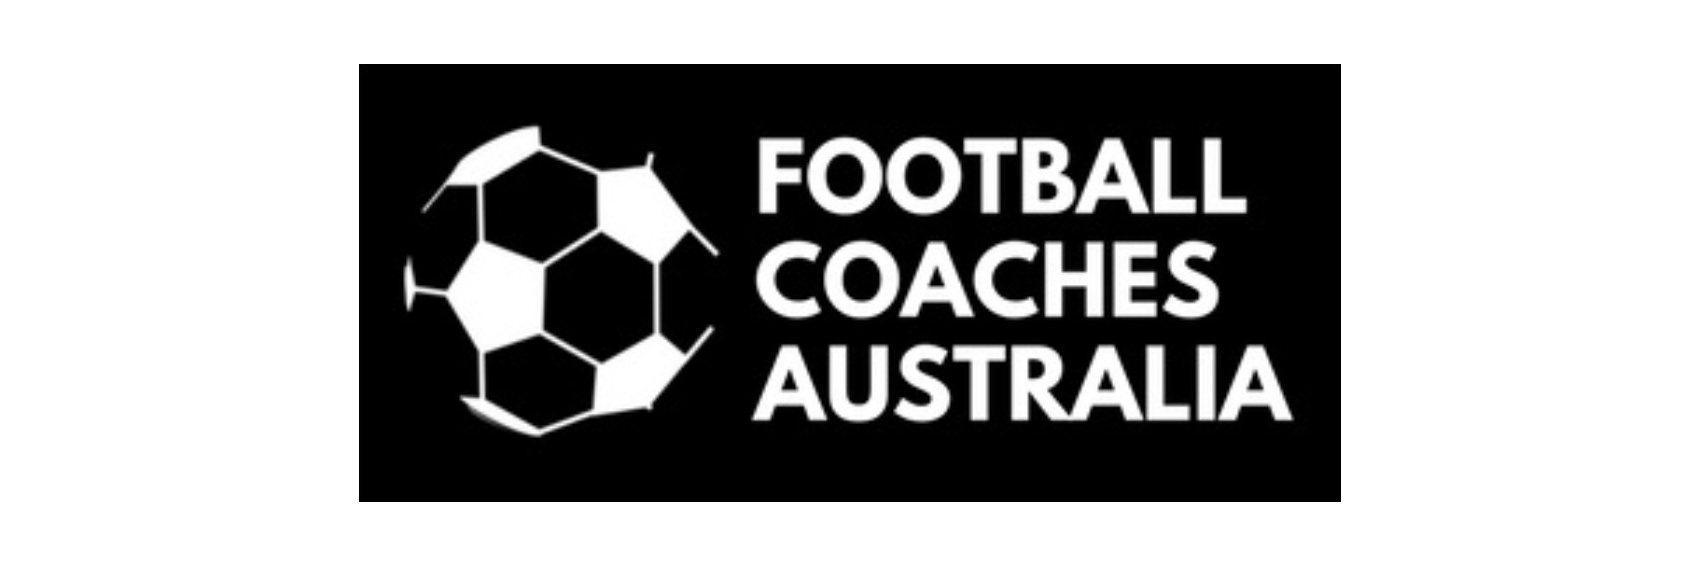 FCA Statement: FFA statement and Reid apology on Stajcic termination